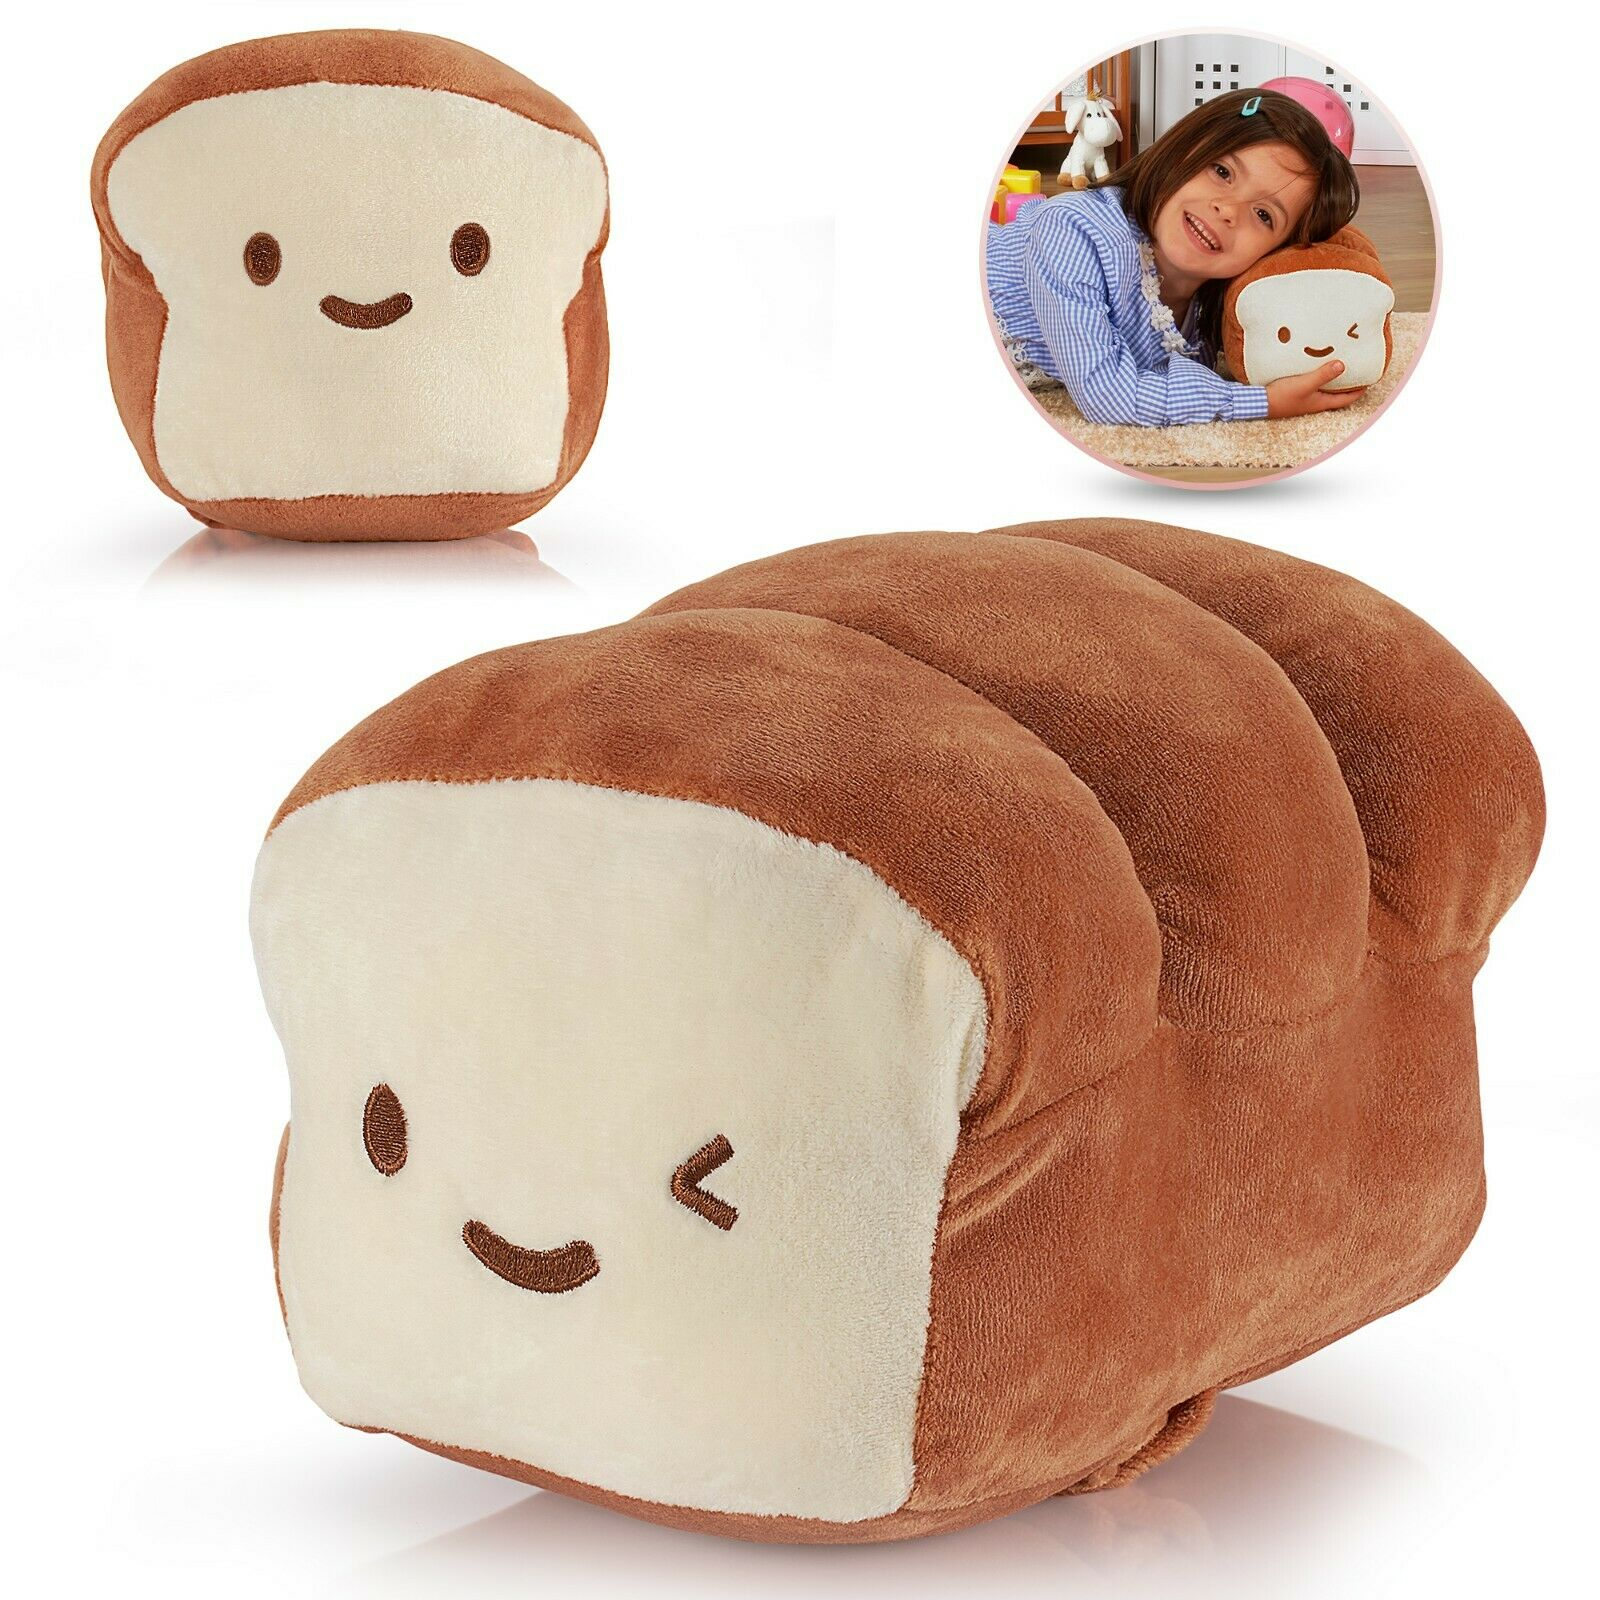 bread plush pillow cushion doll cotton food